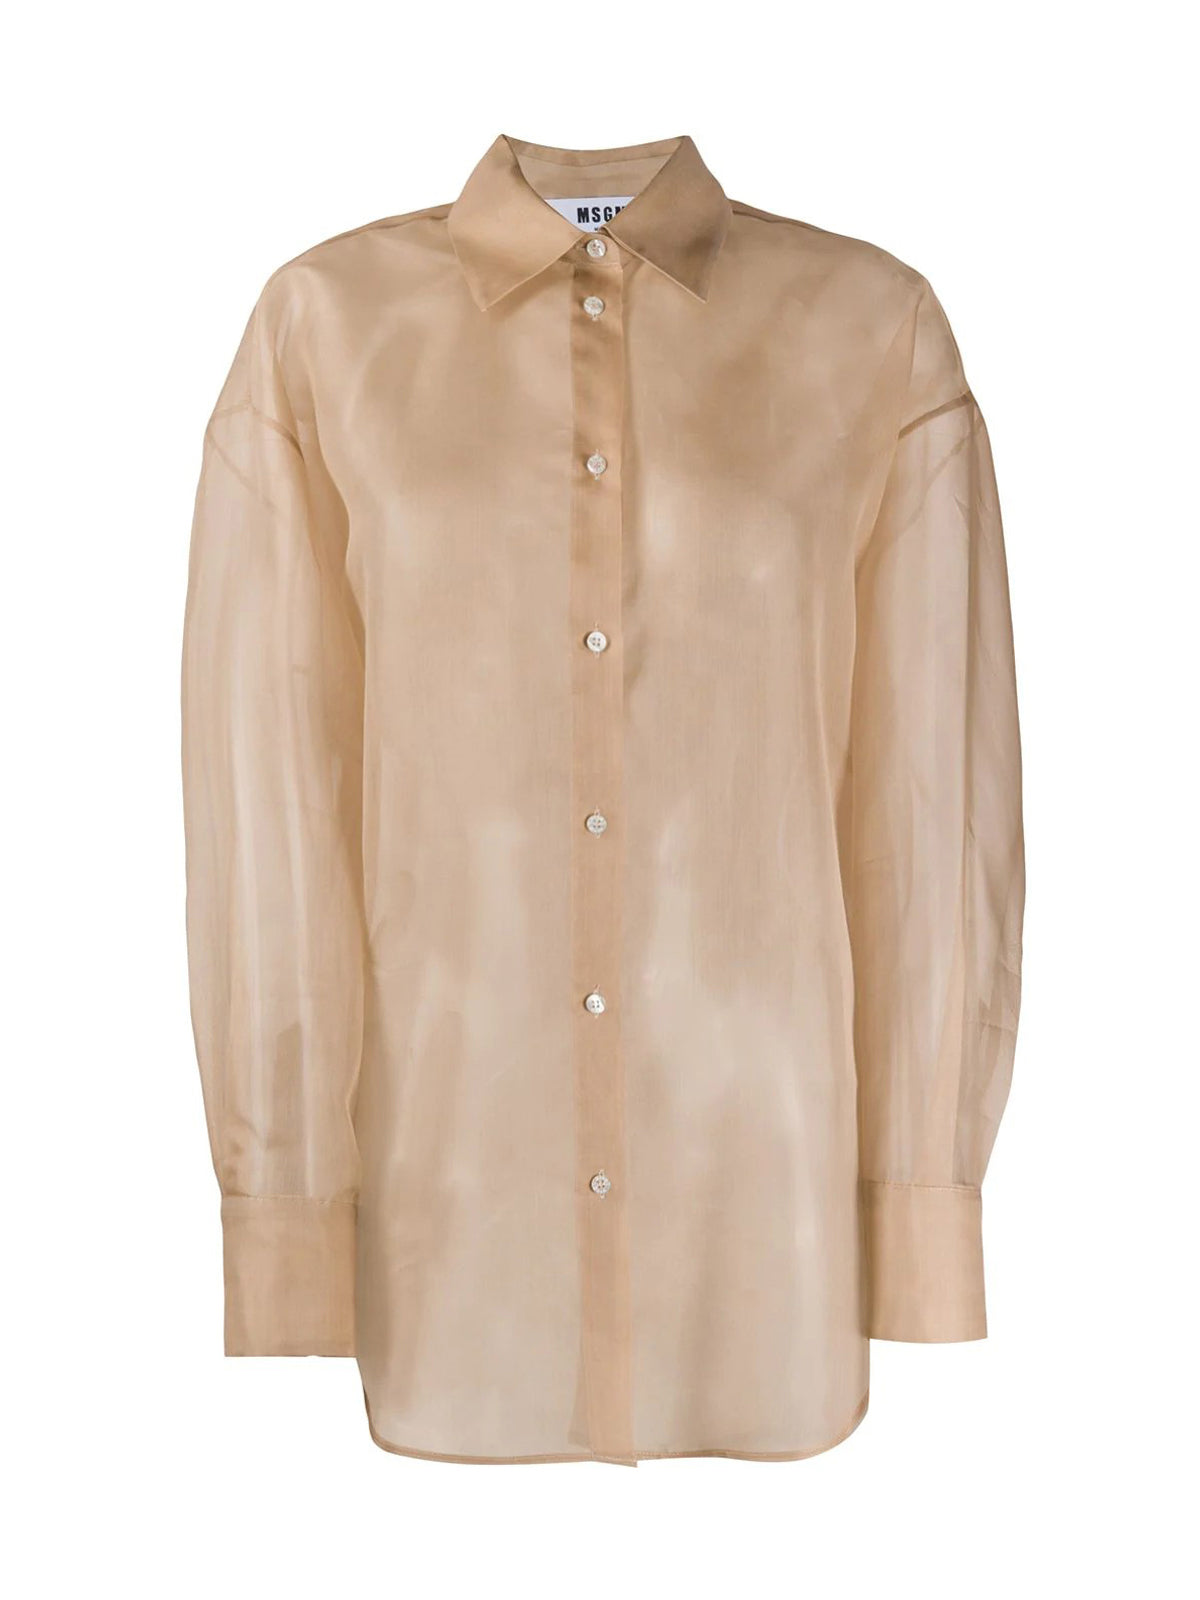 long-sleeved organza shirt